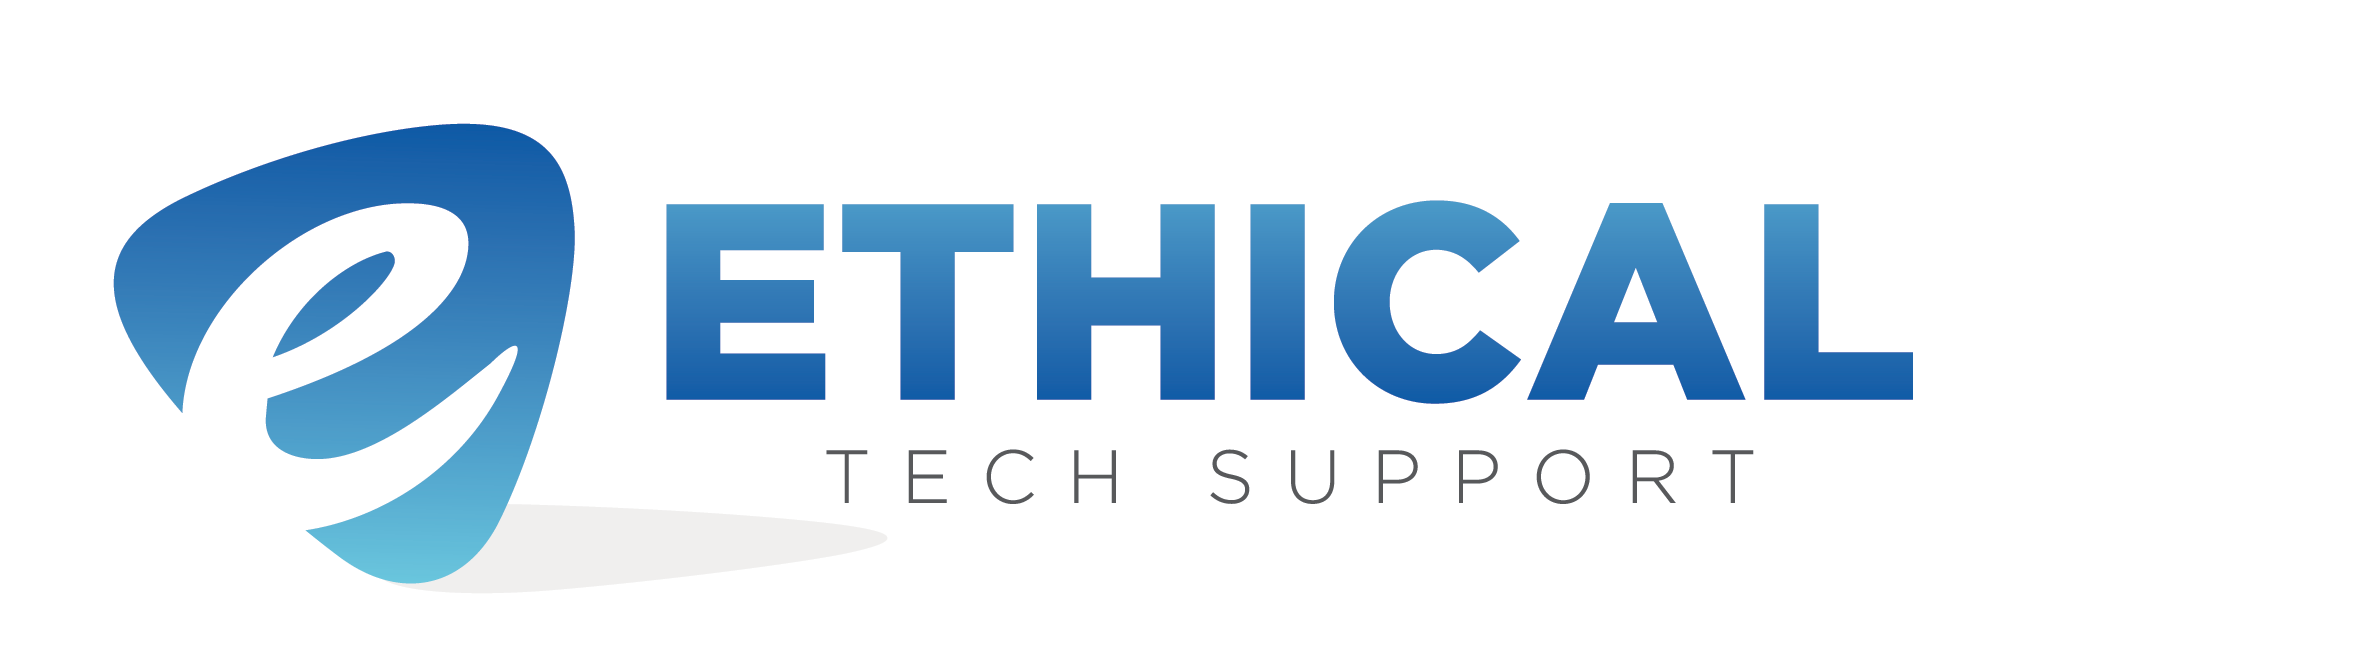 Ethical Tech Support